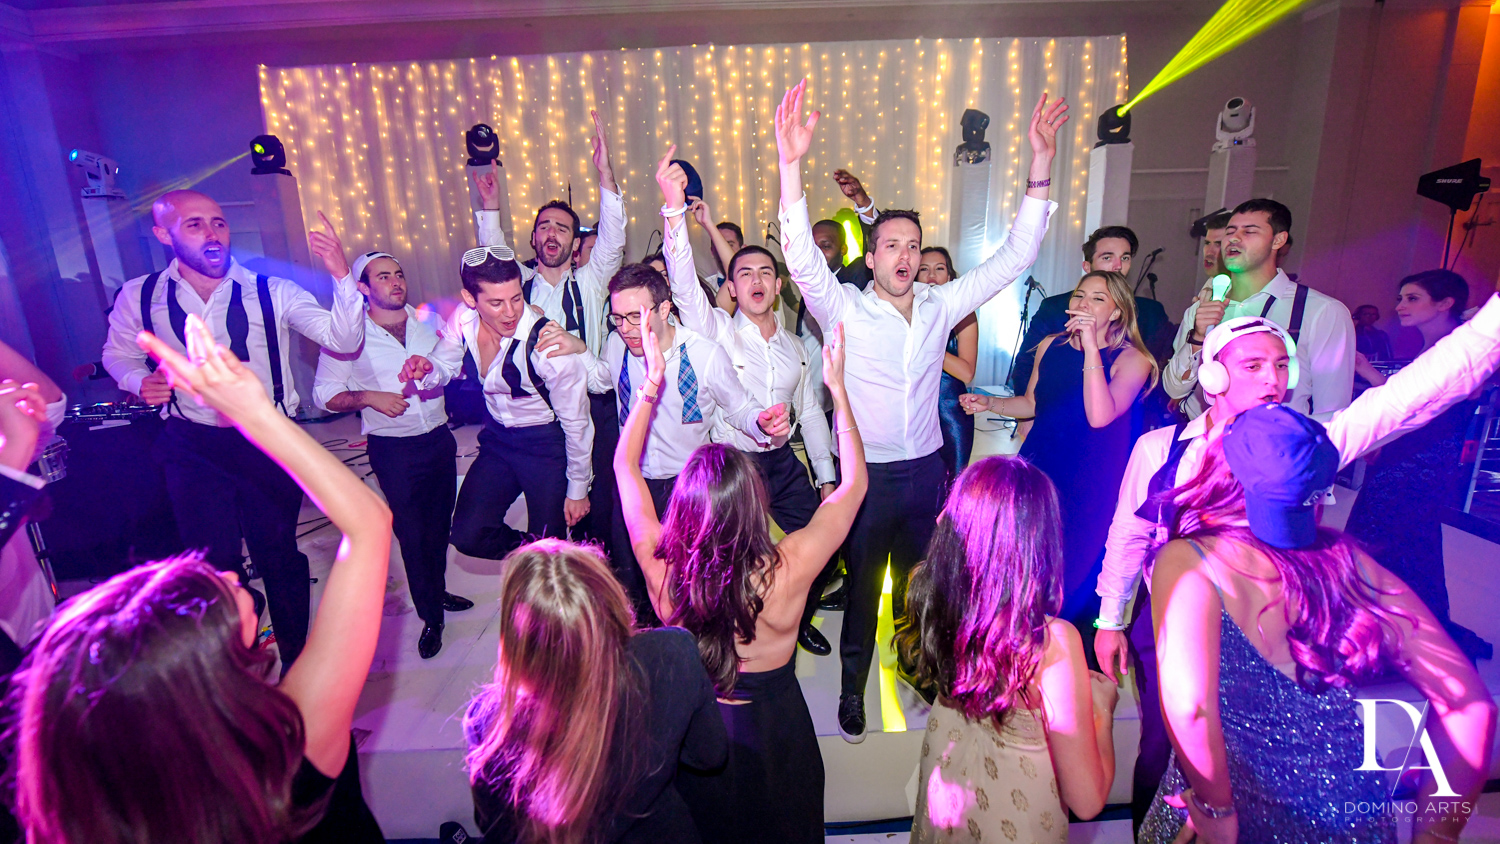 fun party at A Ritz Carlton Wedding in Key Biscayne by Domino Arts Photography